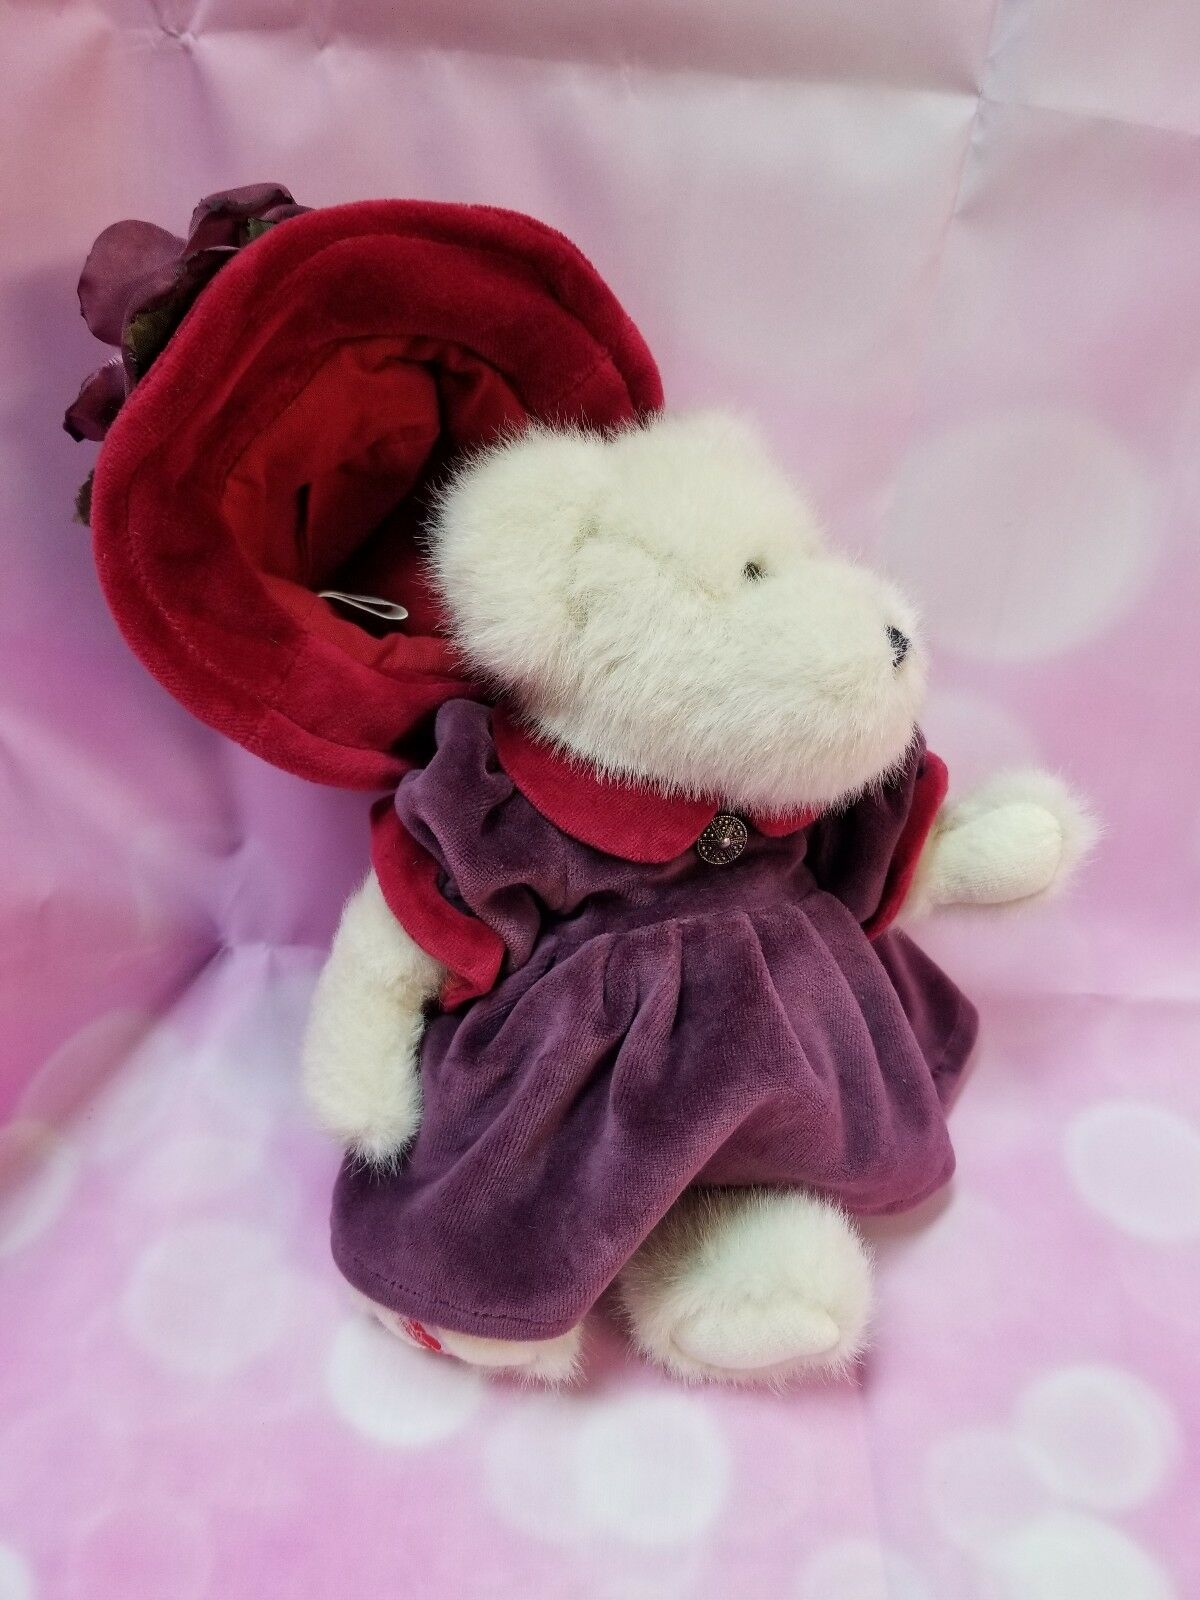 Boyds Bear 1364 1364 1364 Rare Collectible 1988-2004 Original The ROT Hat Society - BIN60 af6b7a